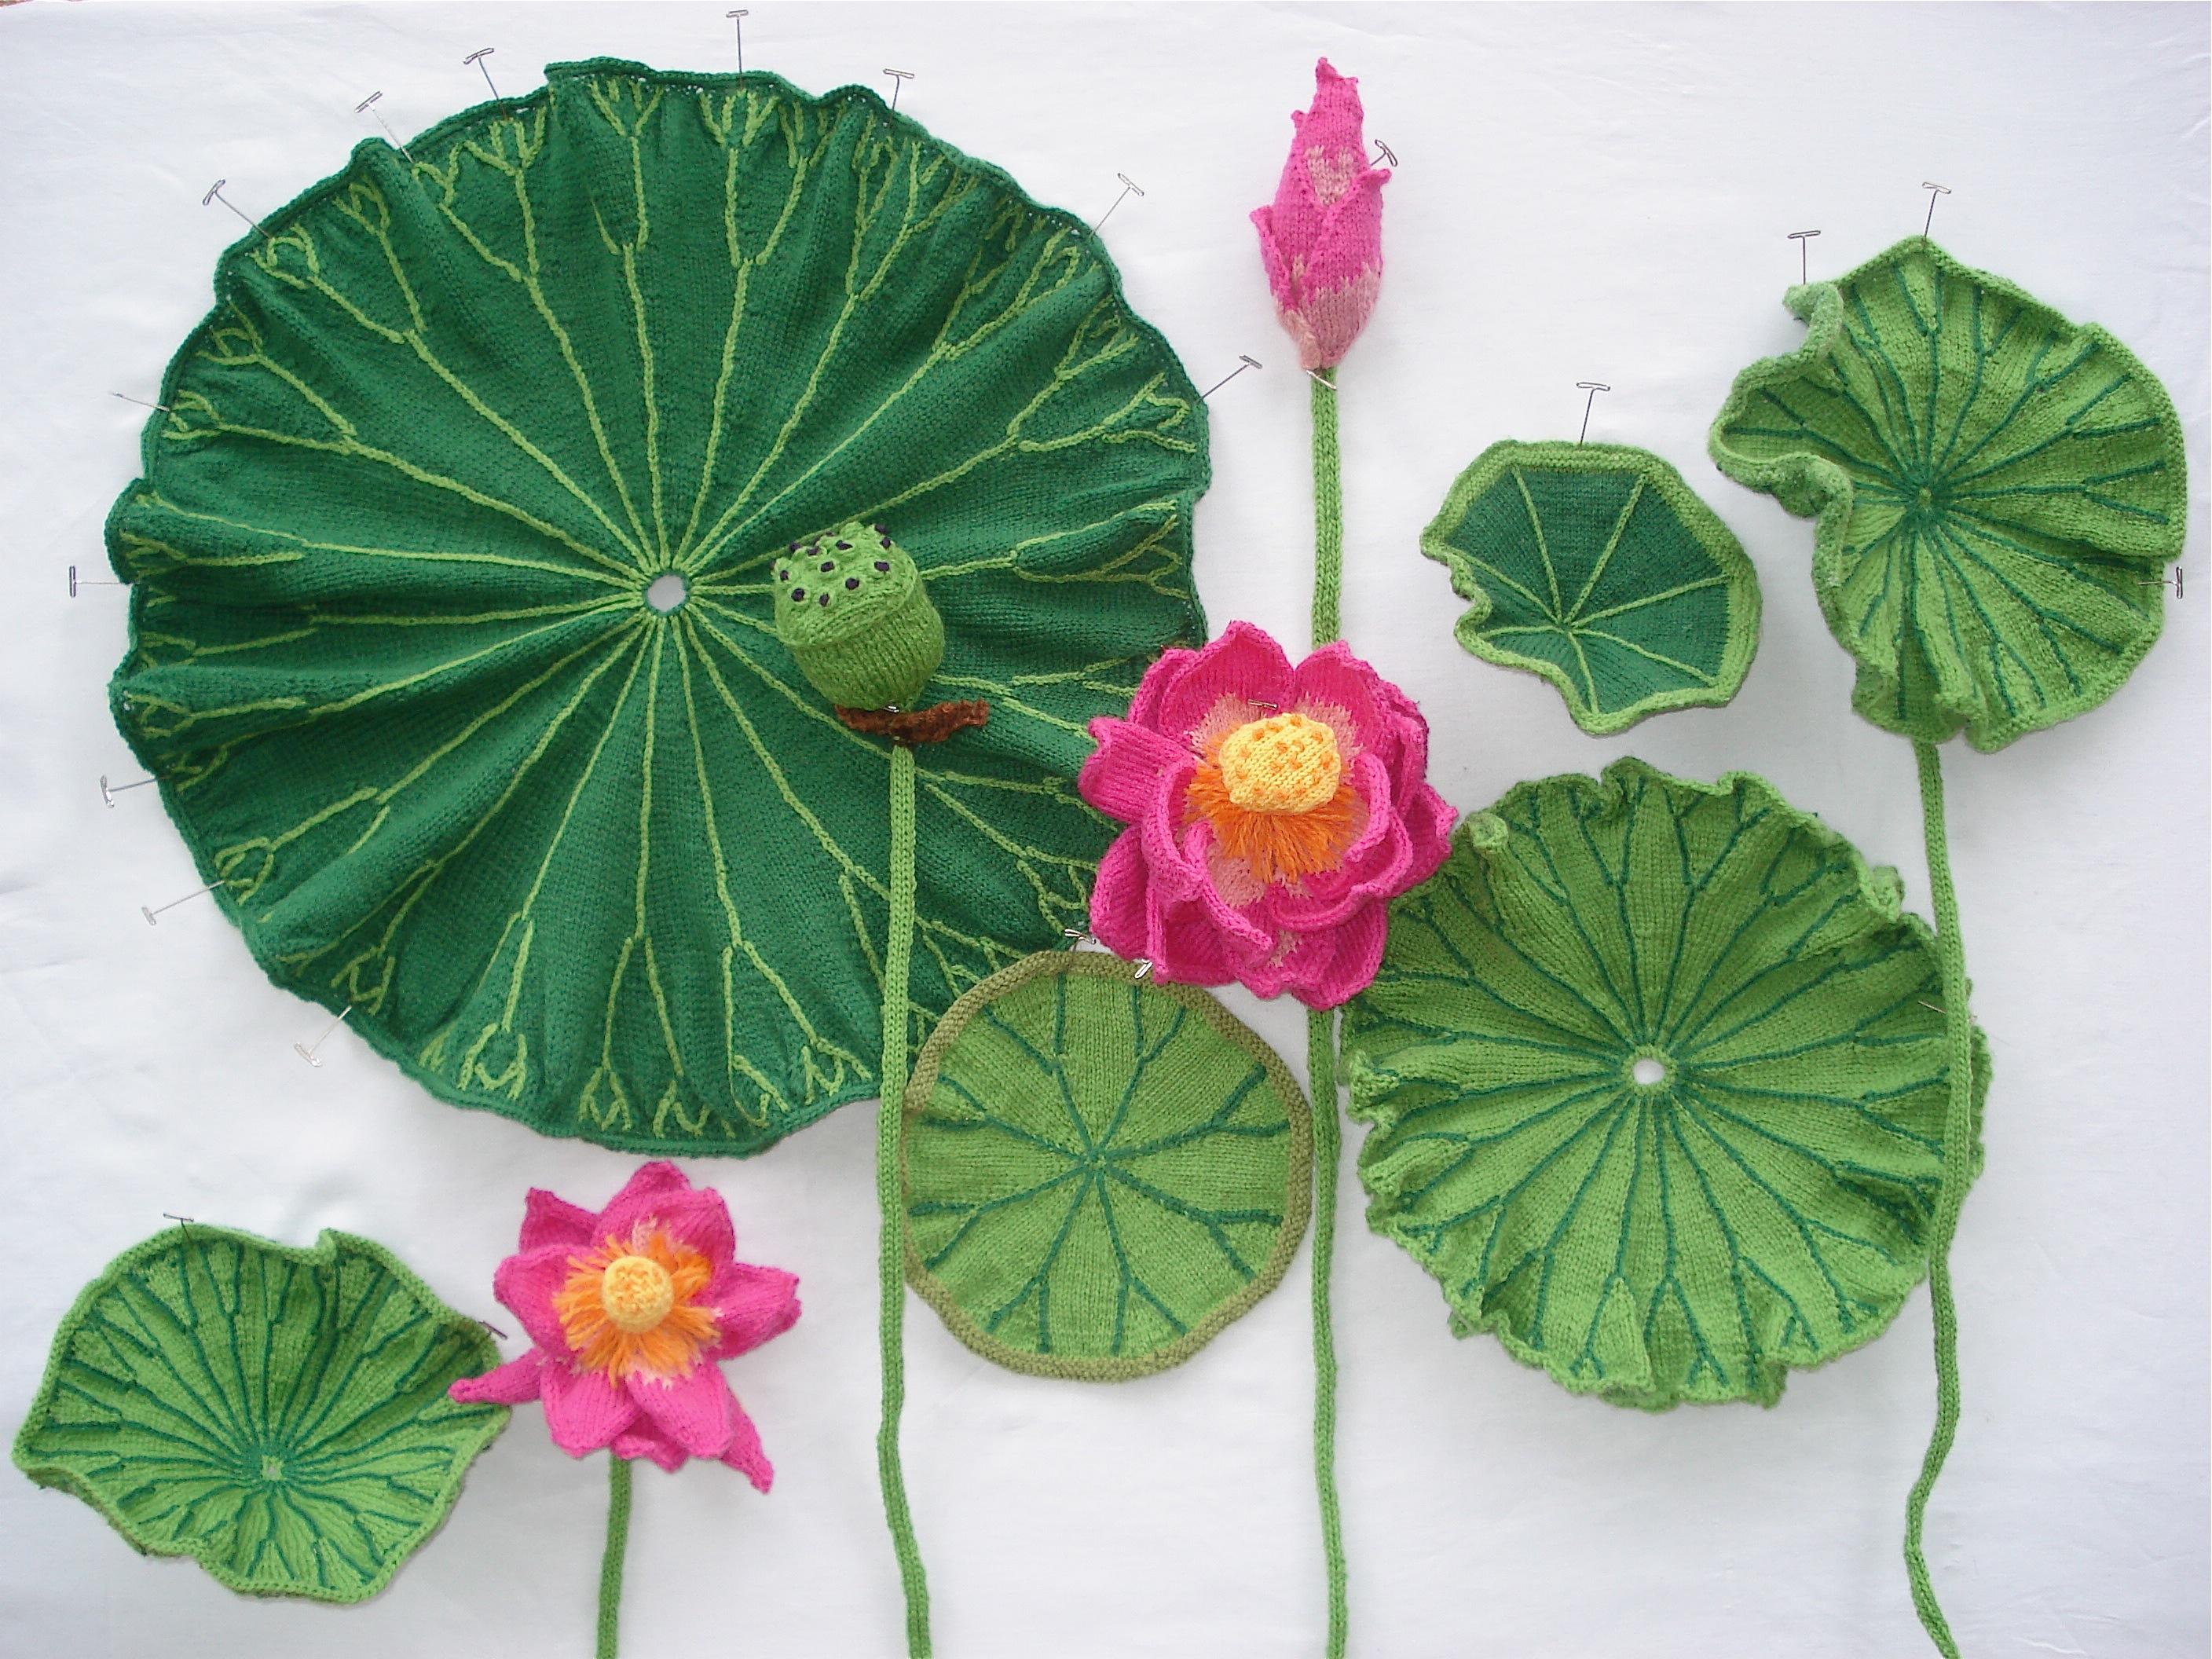 Knitted lotus flowers